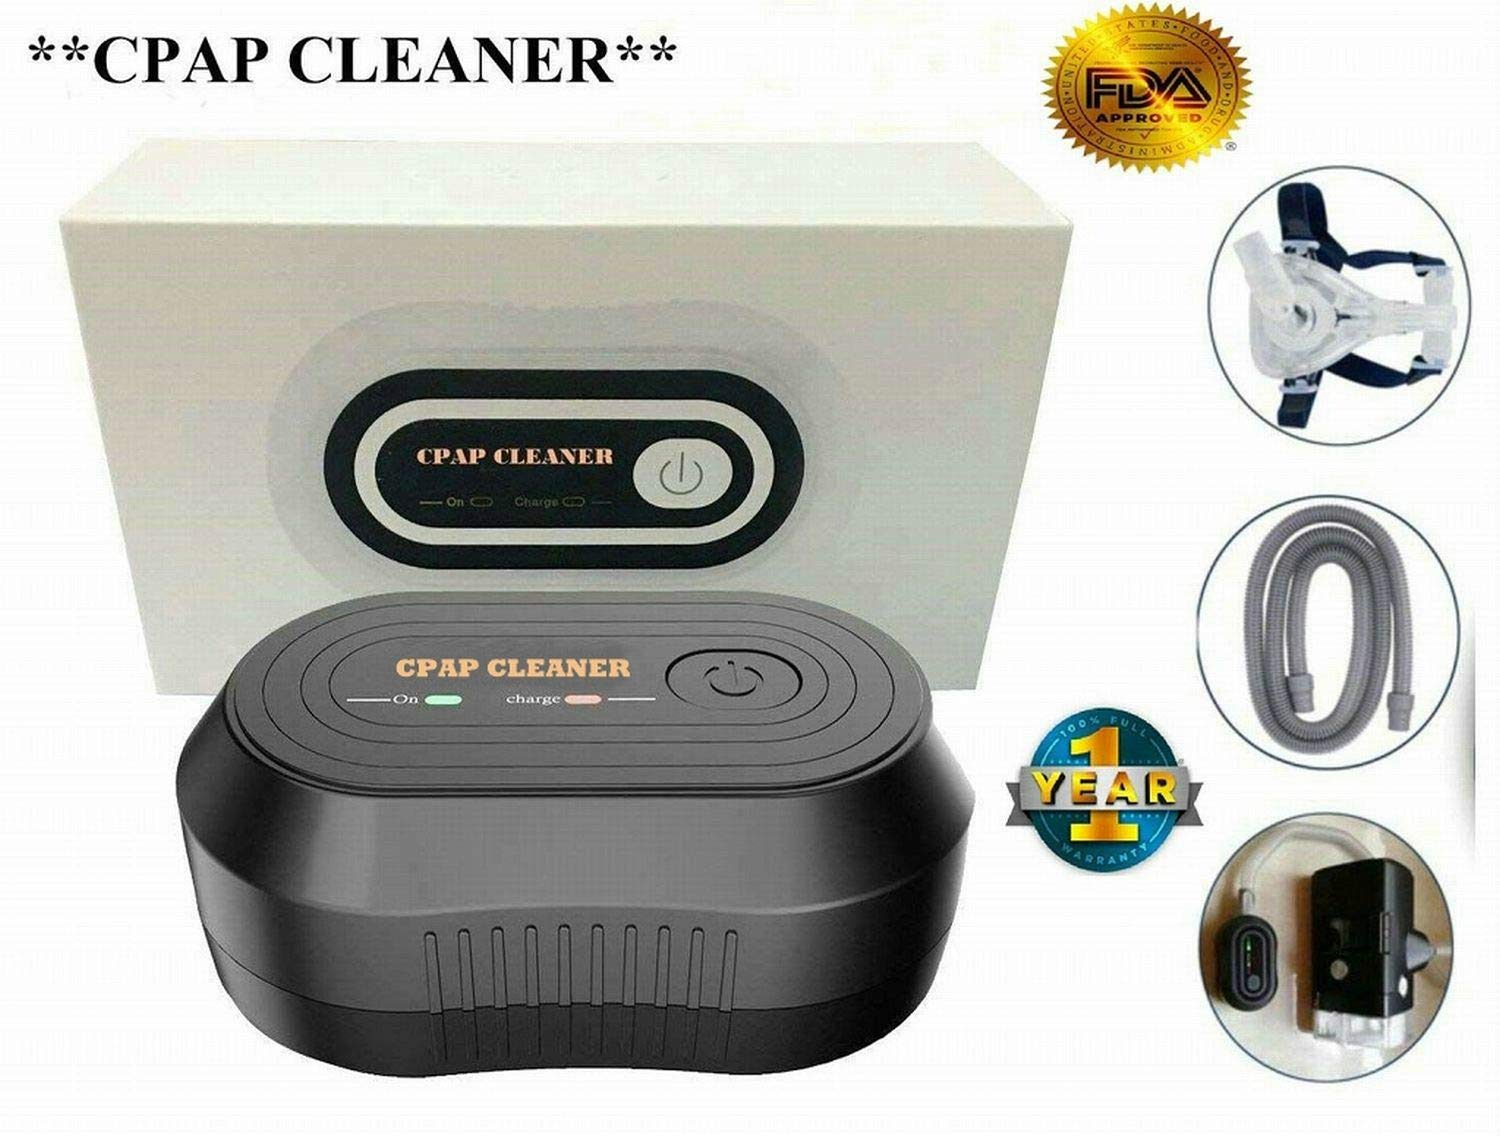 HONEWIN Portable Mini CPAP Cleaner Disinfector CPAP Air Tubes Clean